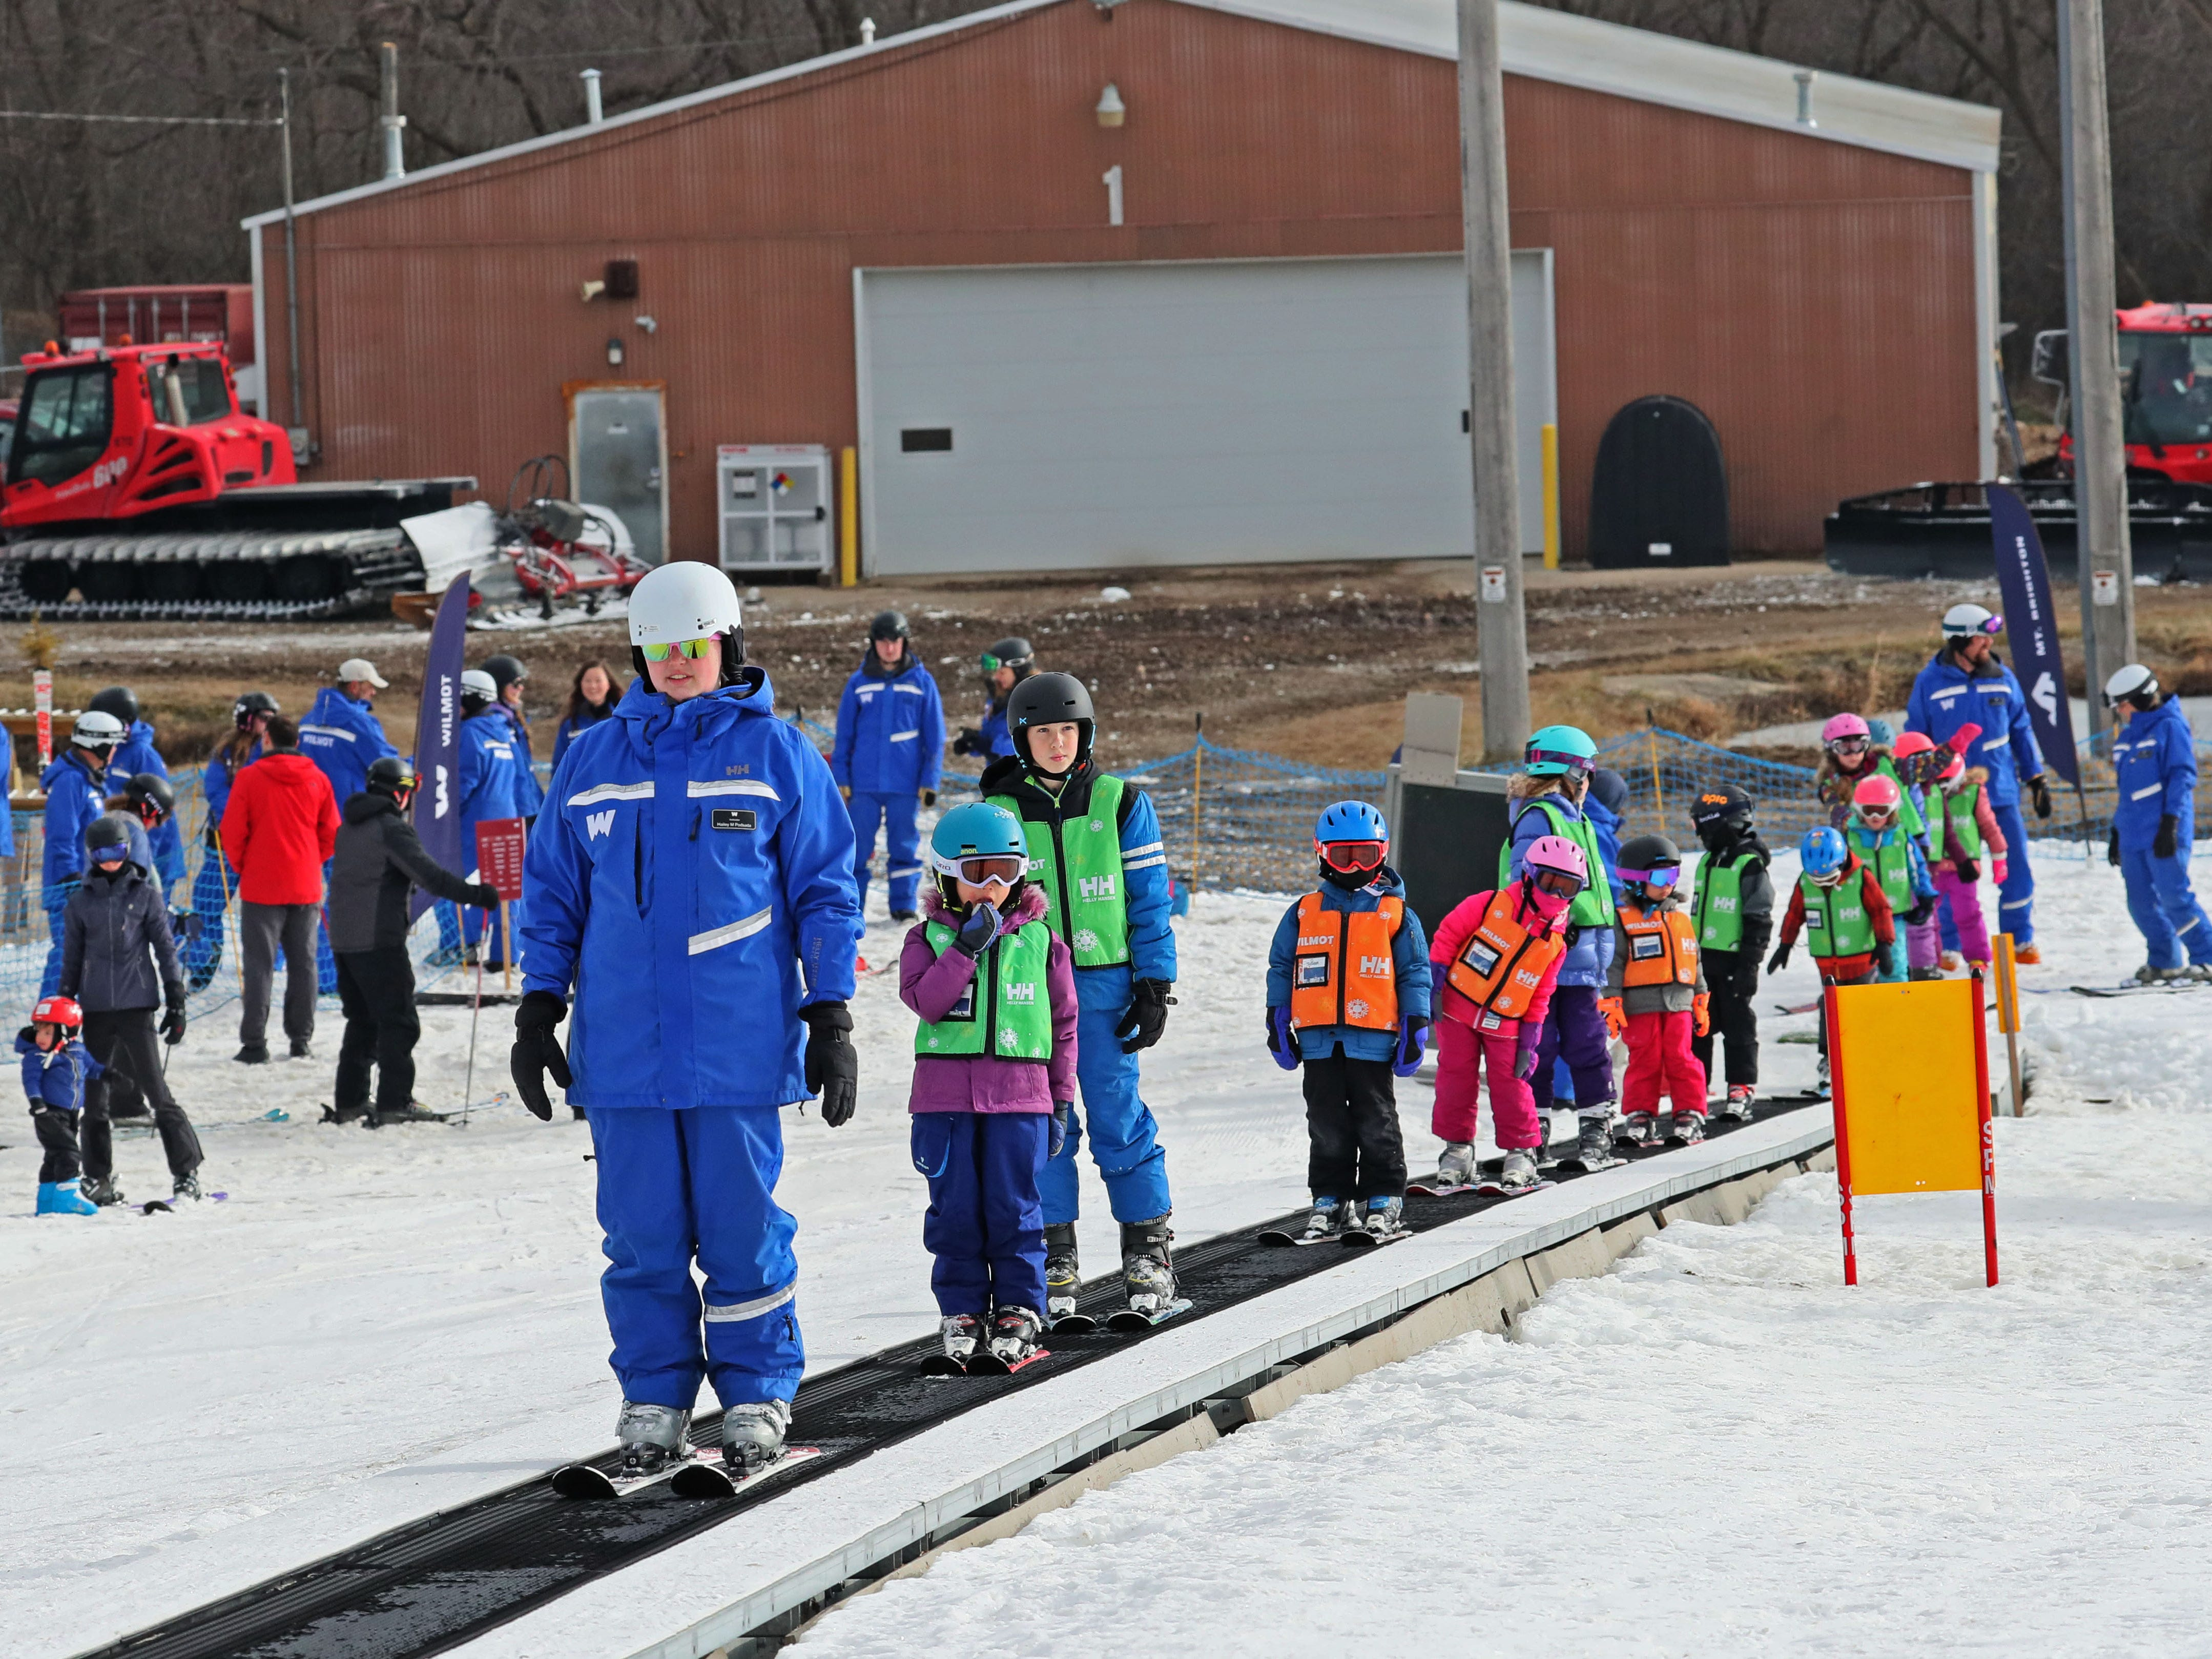 Children at Wilmot Mountain's ski school ride the magic carpet to get up the small hill.